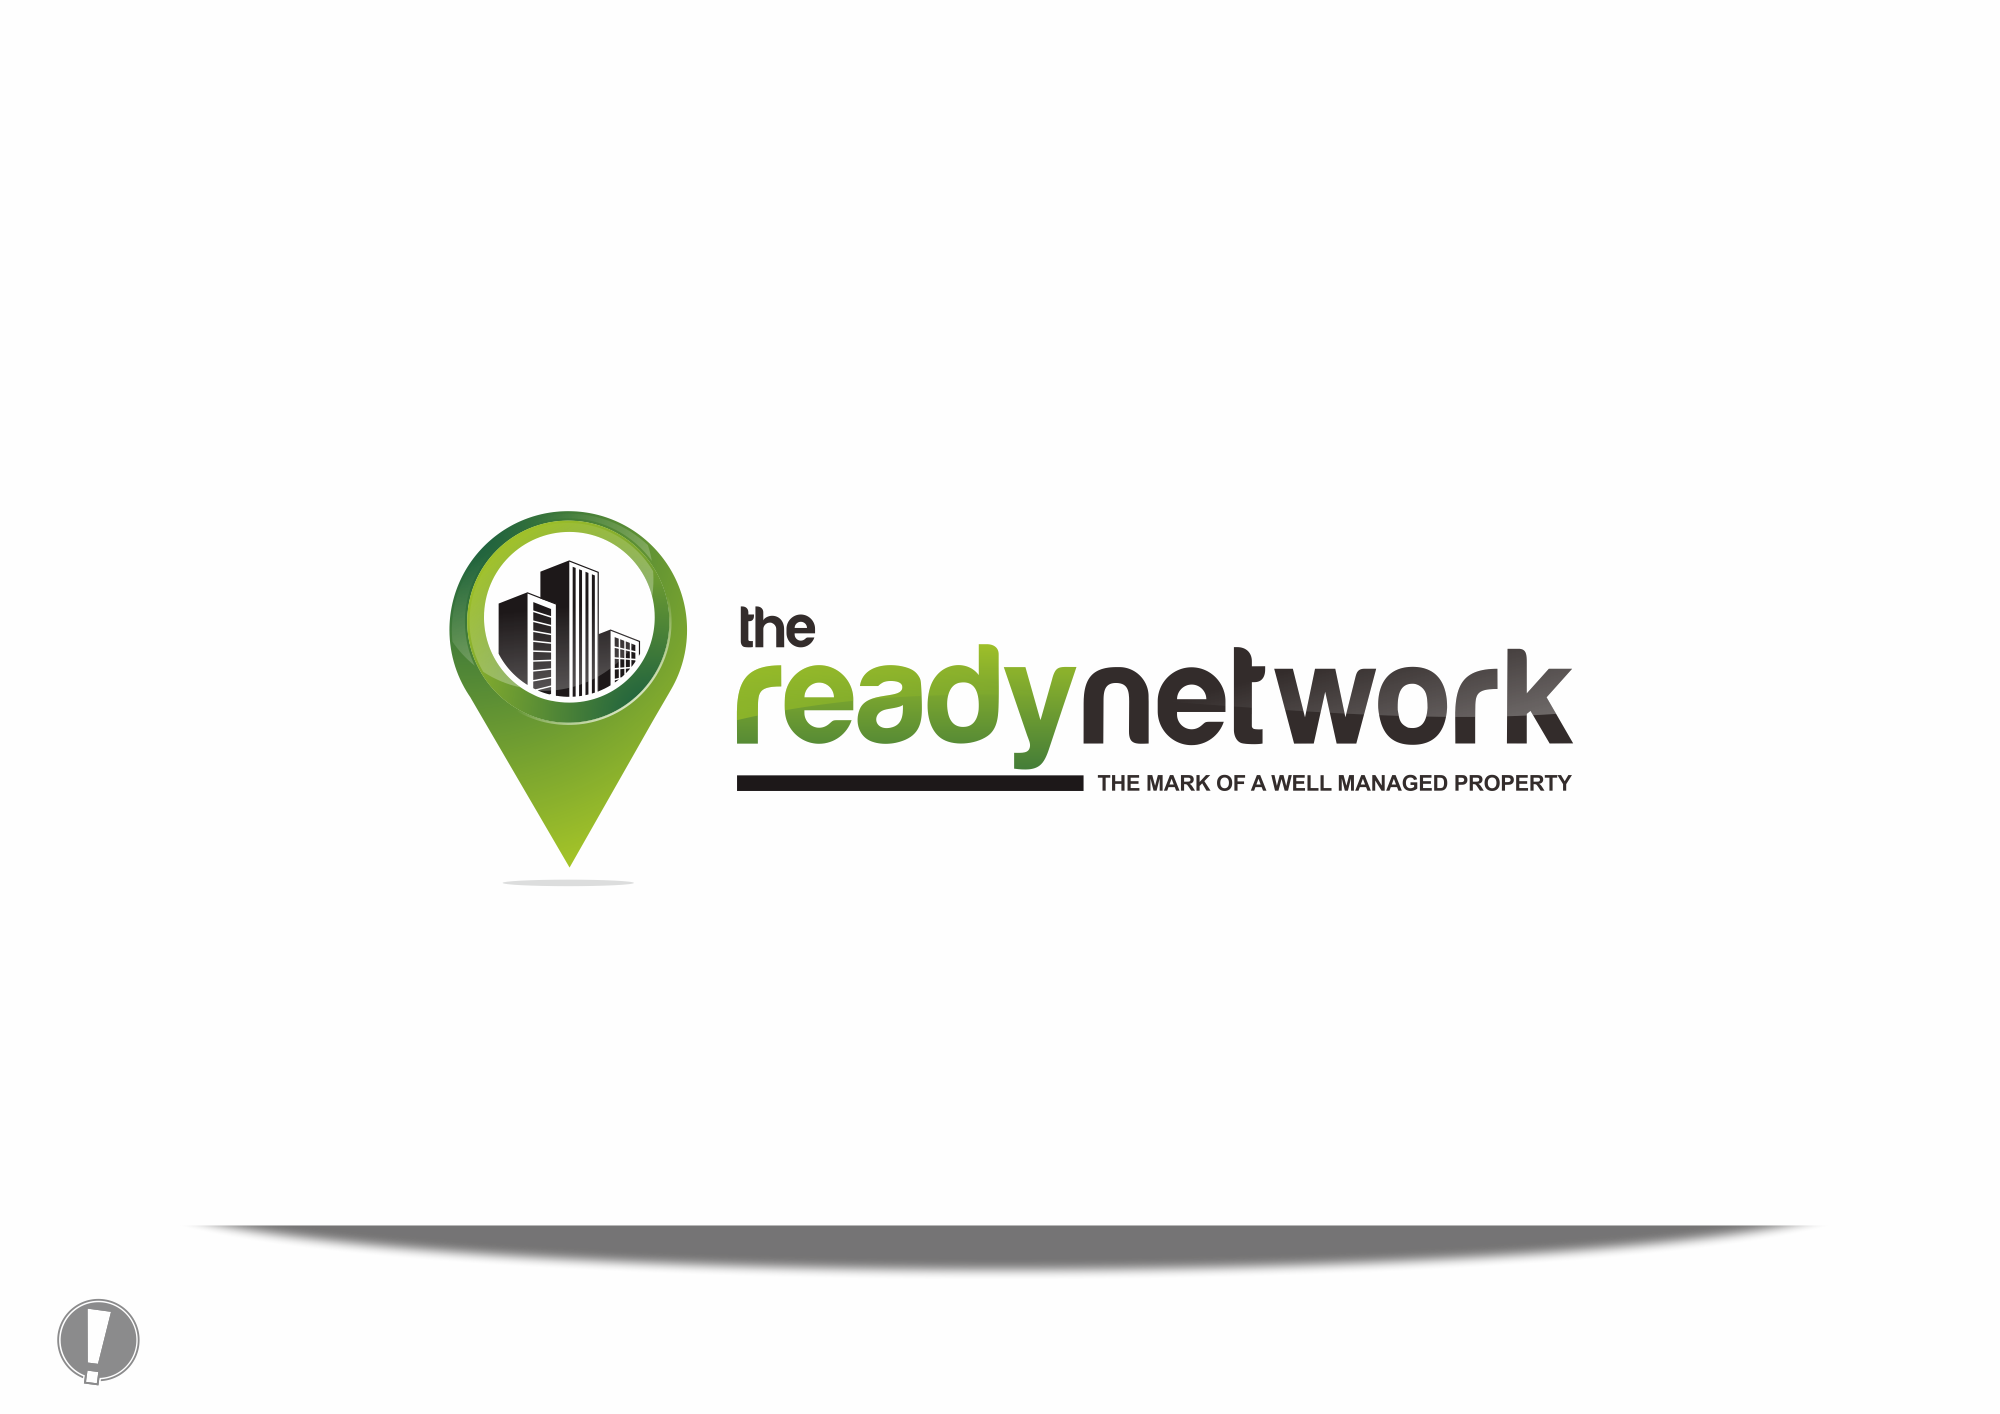 Start a revolution! Design the logo to launch The Ready Network